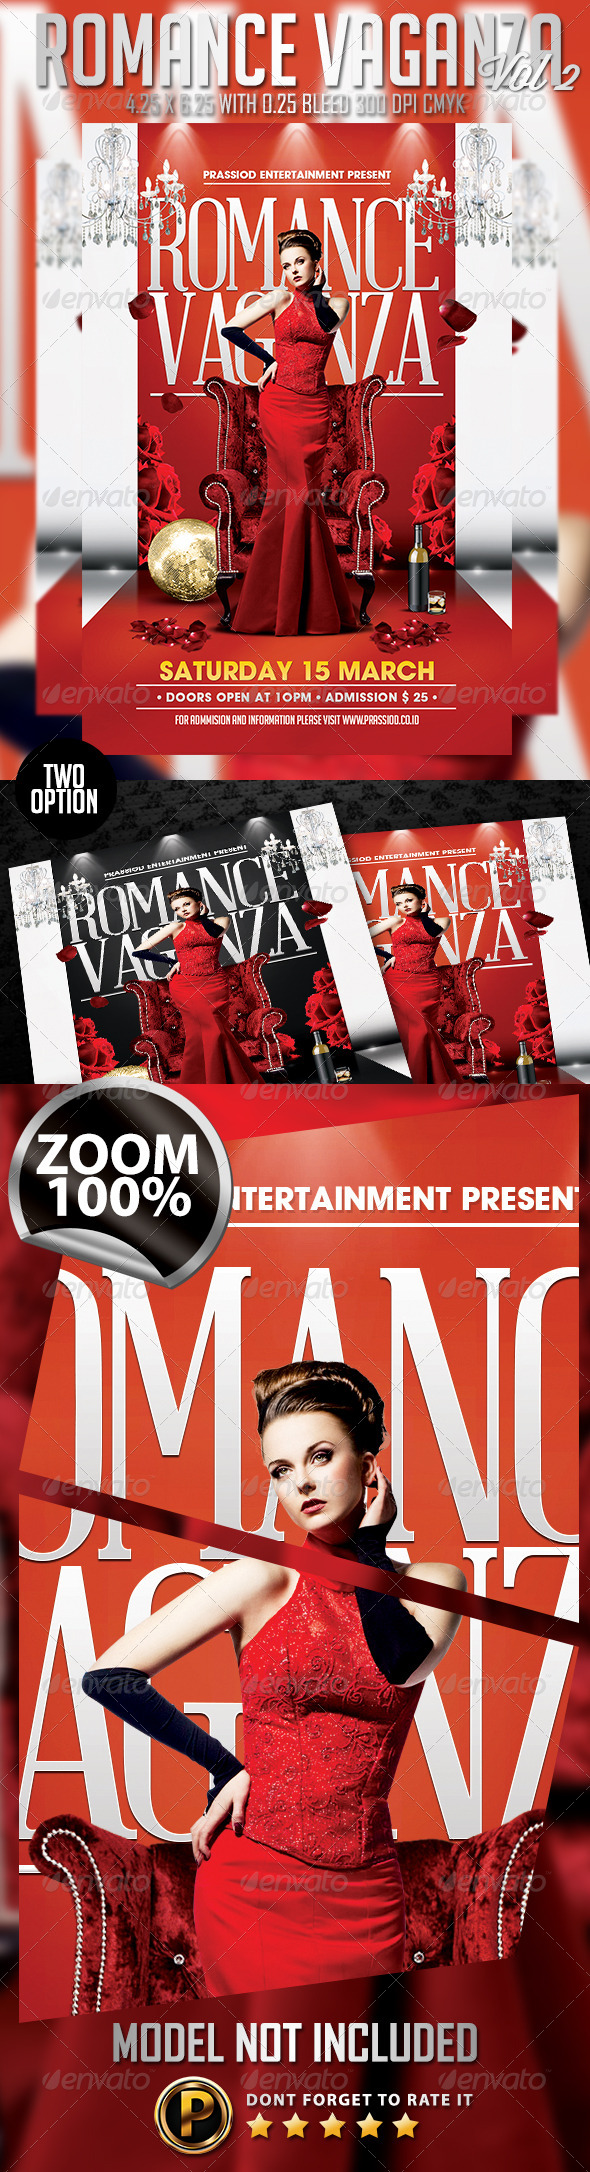 Romance Vaganza Flyer Template Vol 2 - Clubs & Parties Events